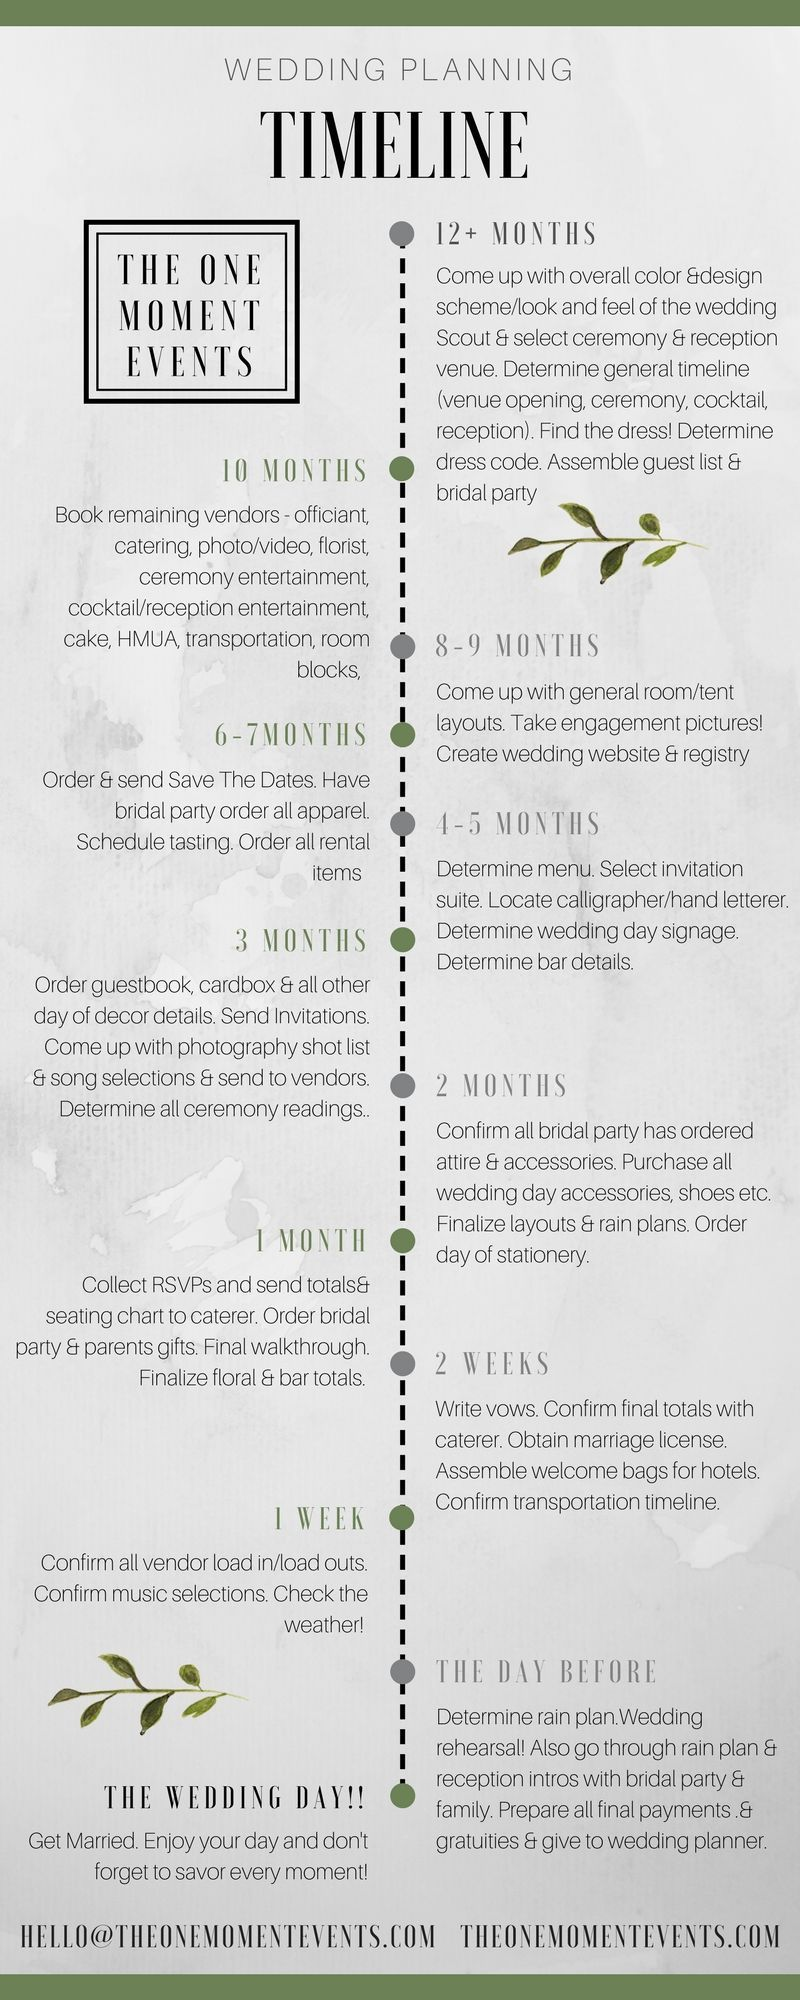 Wedding Planning Timeline Infographic From 12 Months To The Day Of Weddingplanningtimeline Weddingplanninginfographic